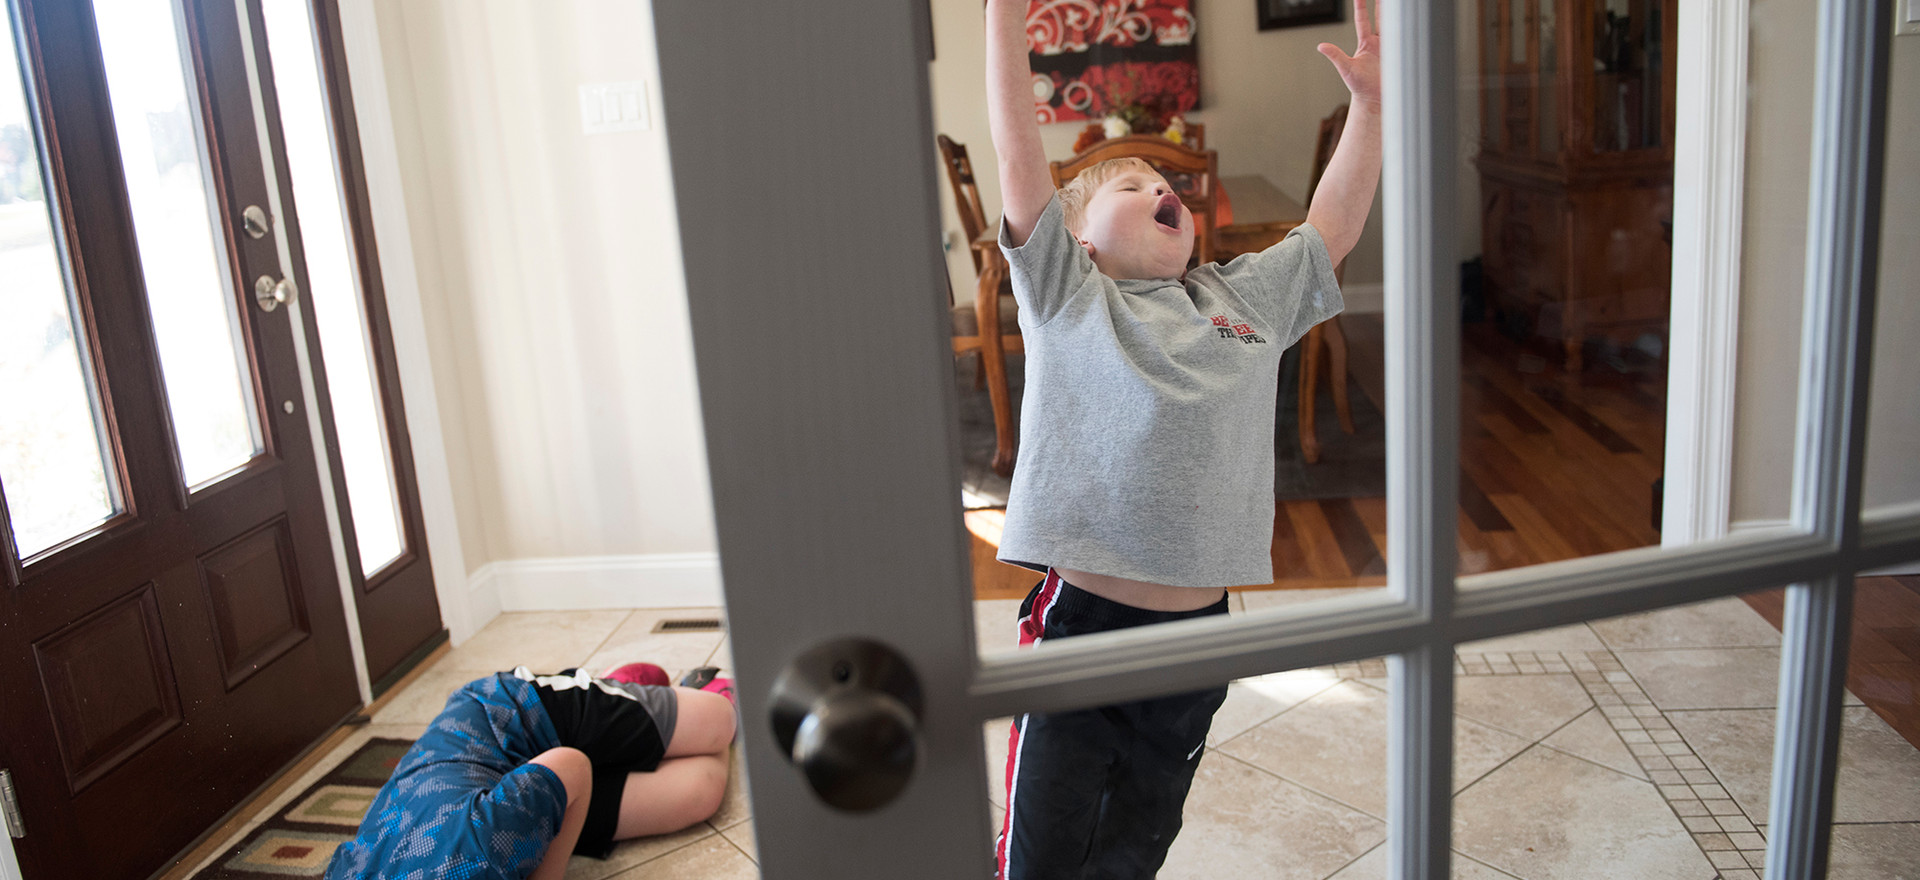 Layton Covol, 6, celebrates scoring a goal on his brother, Braylan, 10, in the foyer of their home.